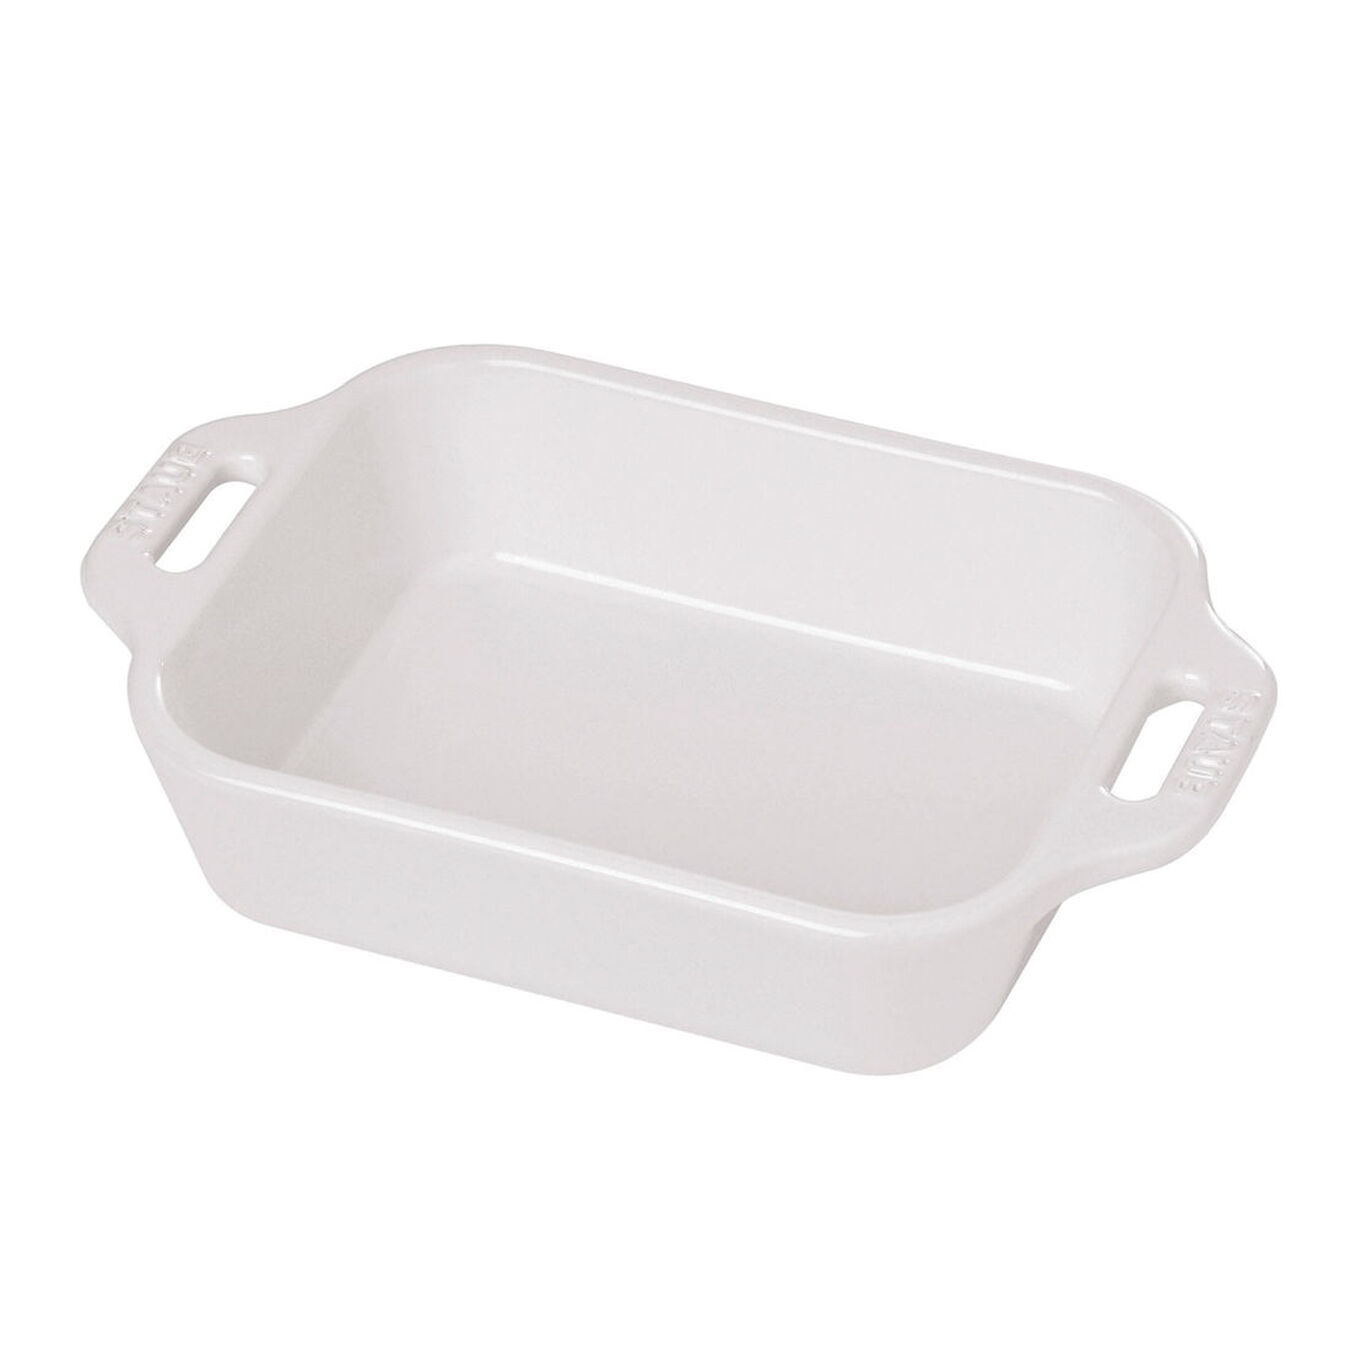 10.5-inch x 7.5-inch Rectangular Baking Dish - White,,large 1